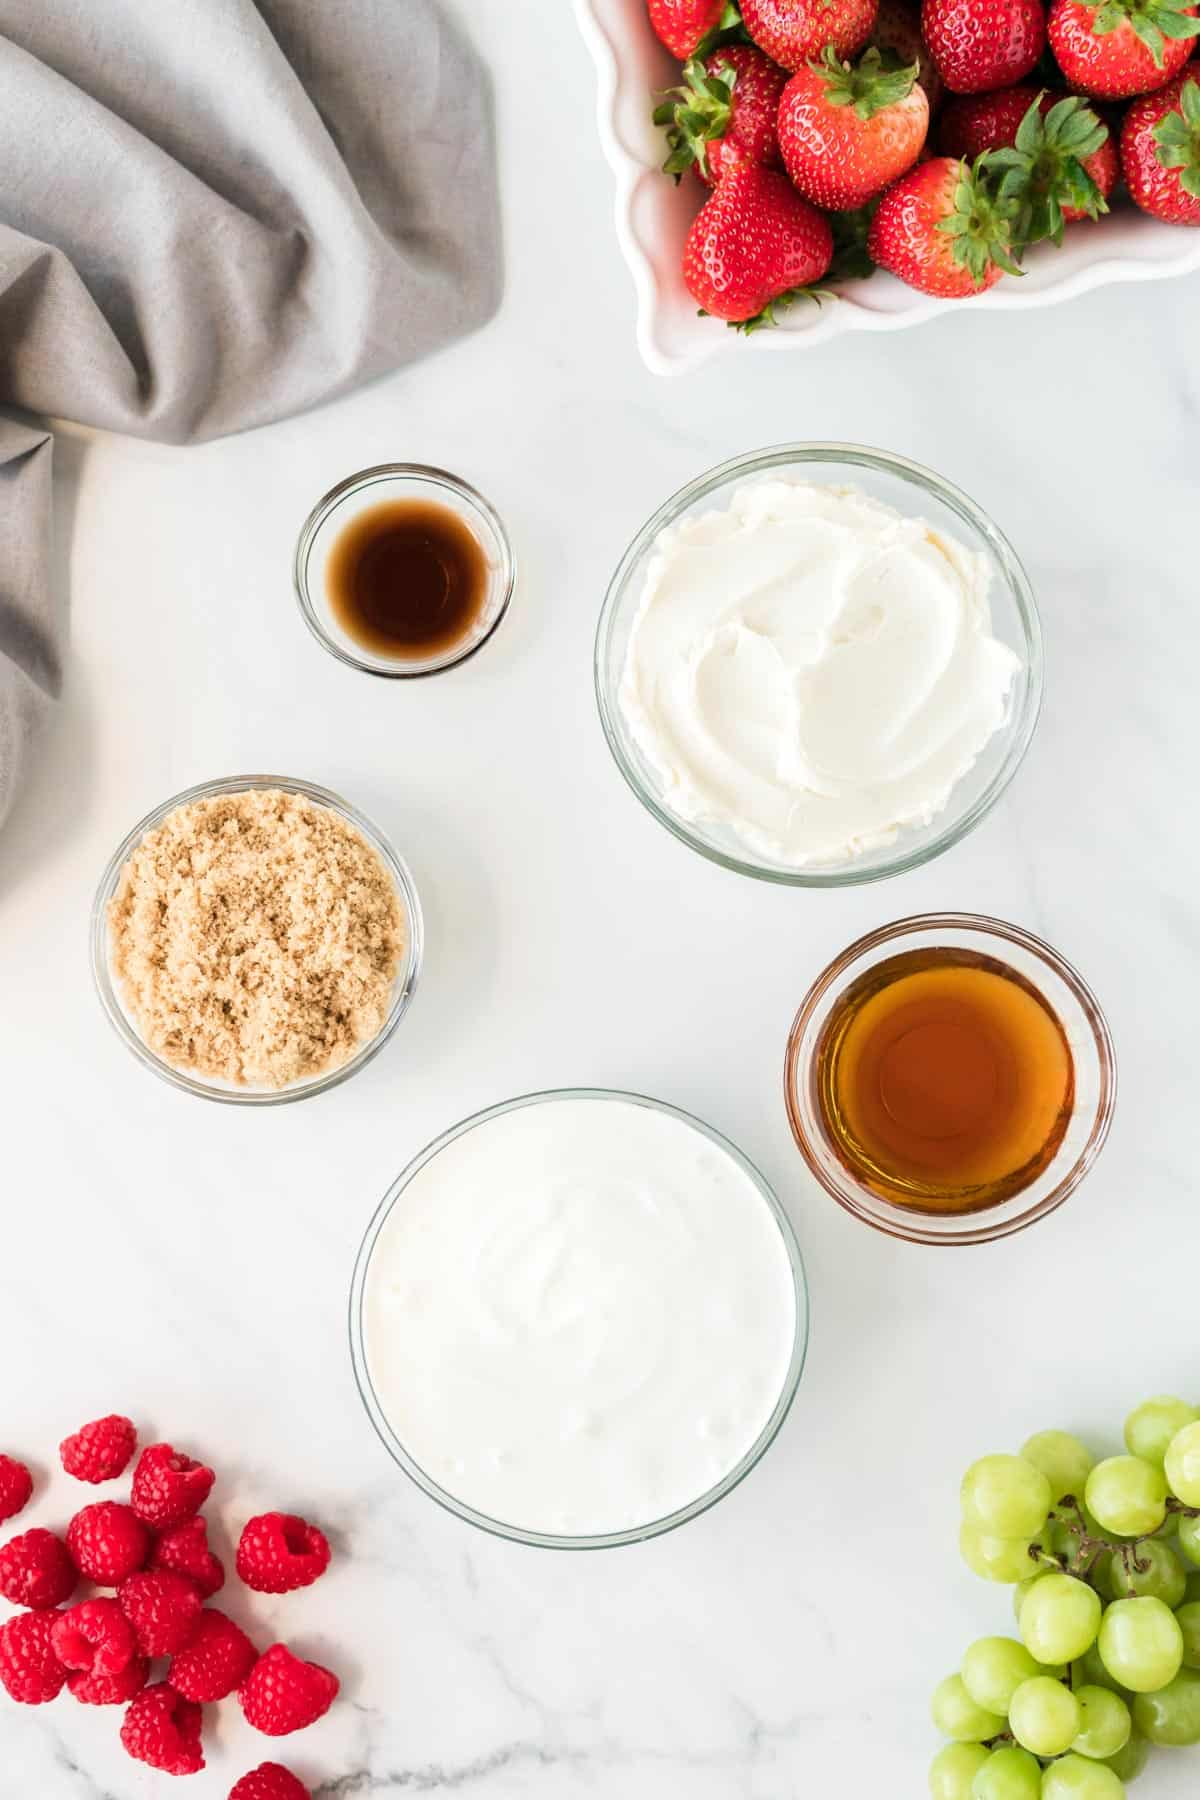 cream cheese fruit dip ingredients in glass bowls